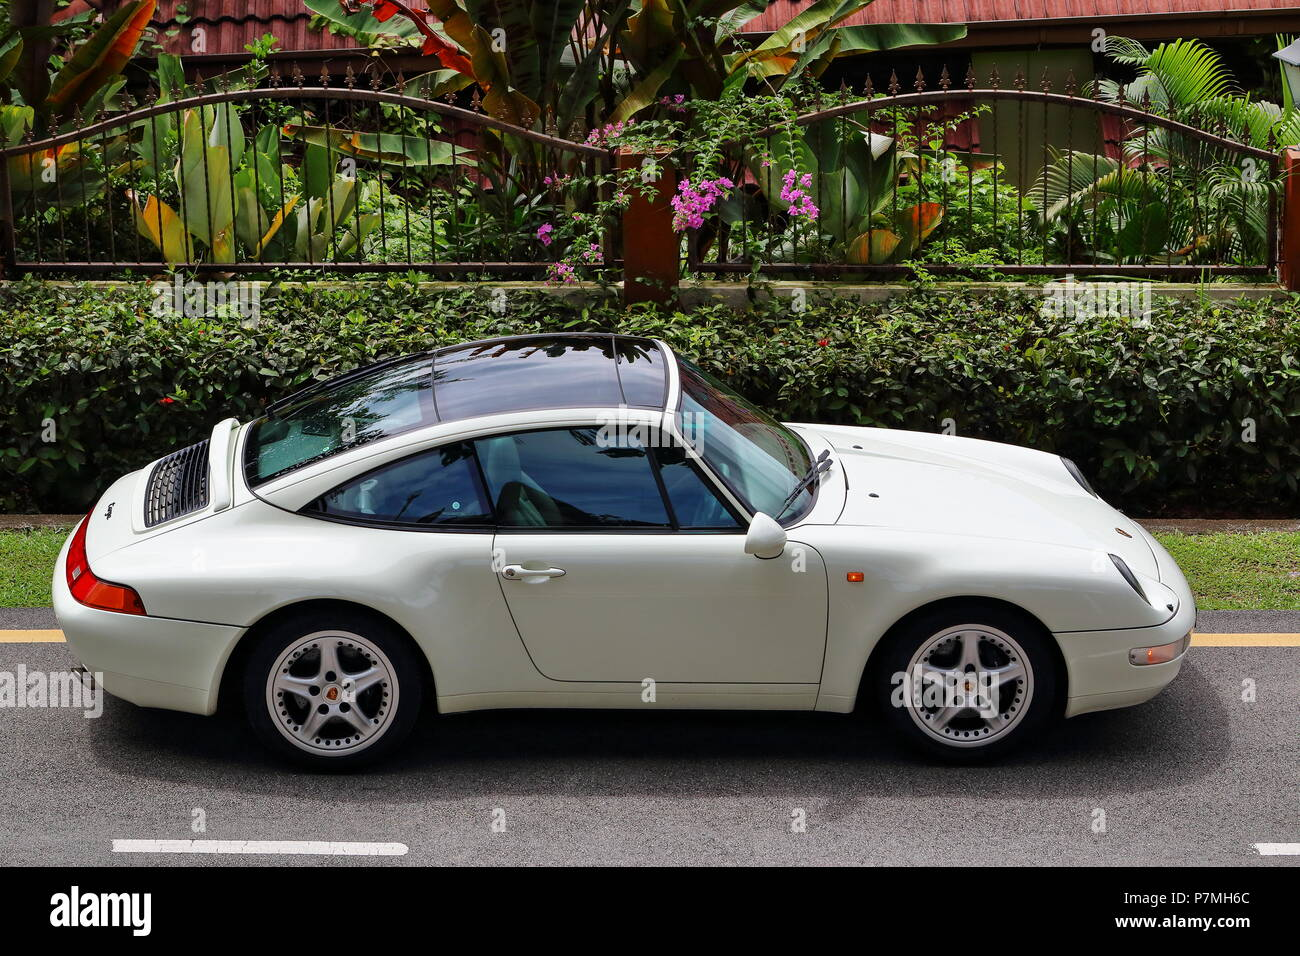 Porsche 911 993 Targa Glass Roof Stock Photo: 211279556 - Alamy